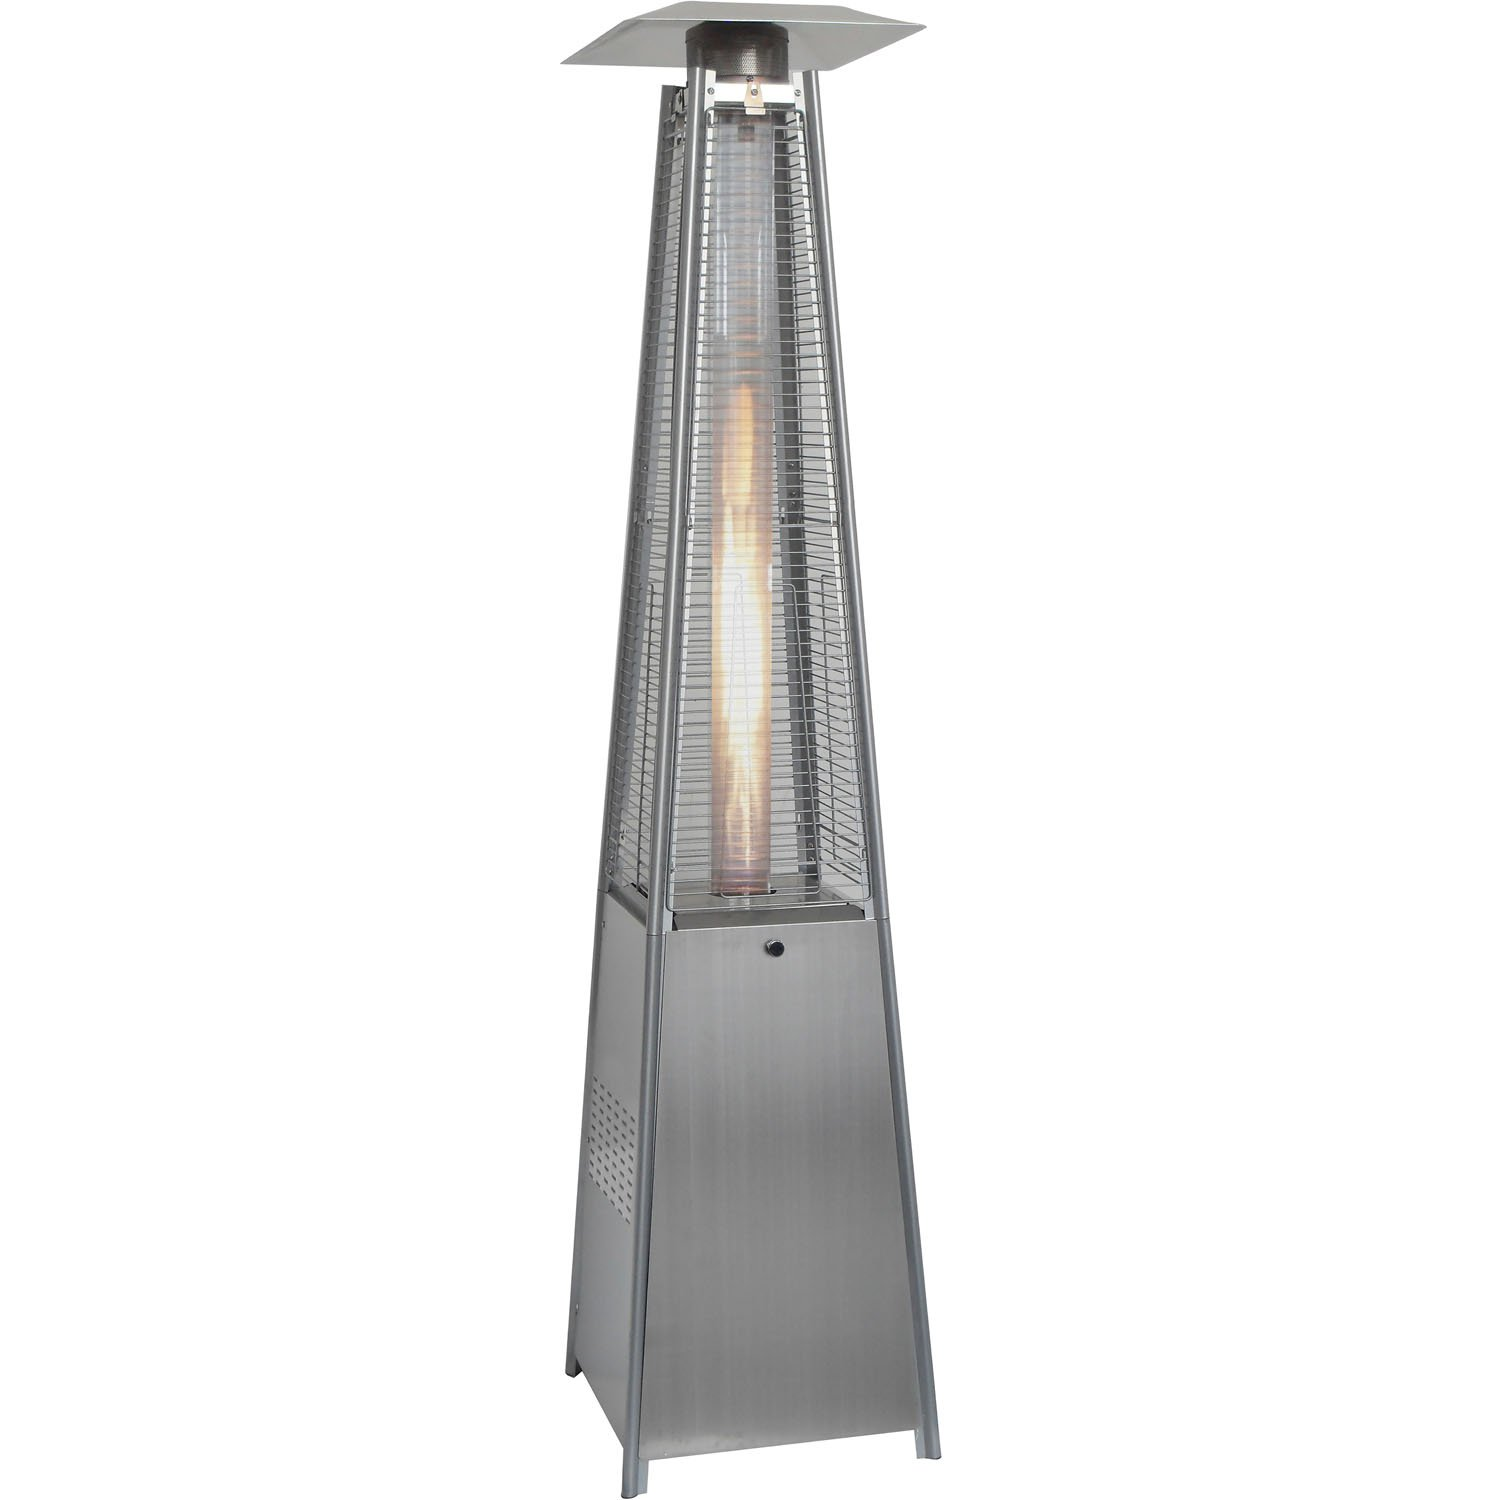 Amazon Hanover BTU Pyramid Propane Patio Heater 7